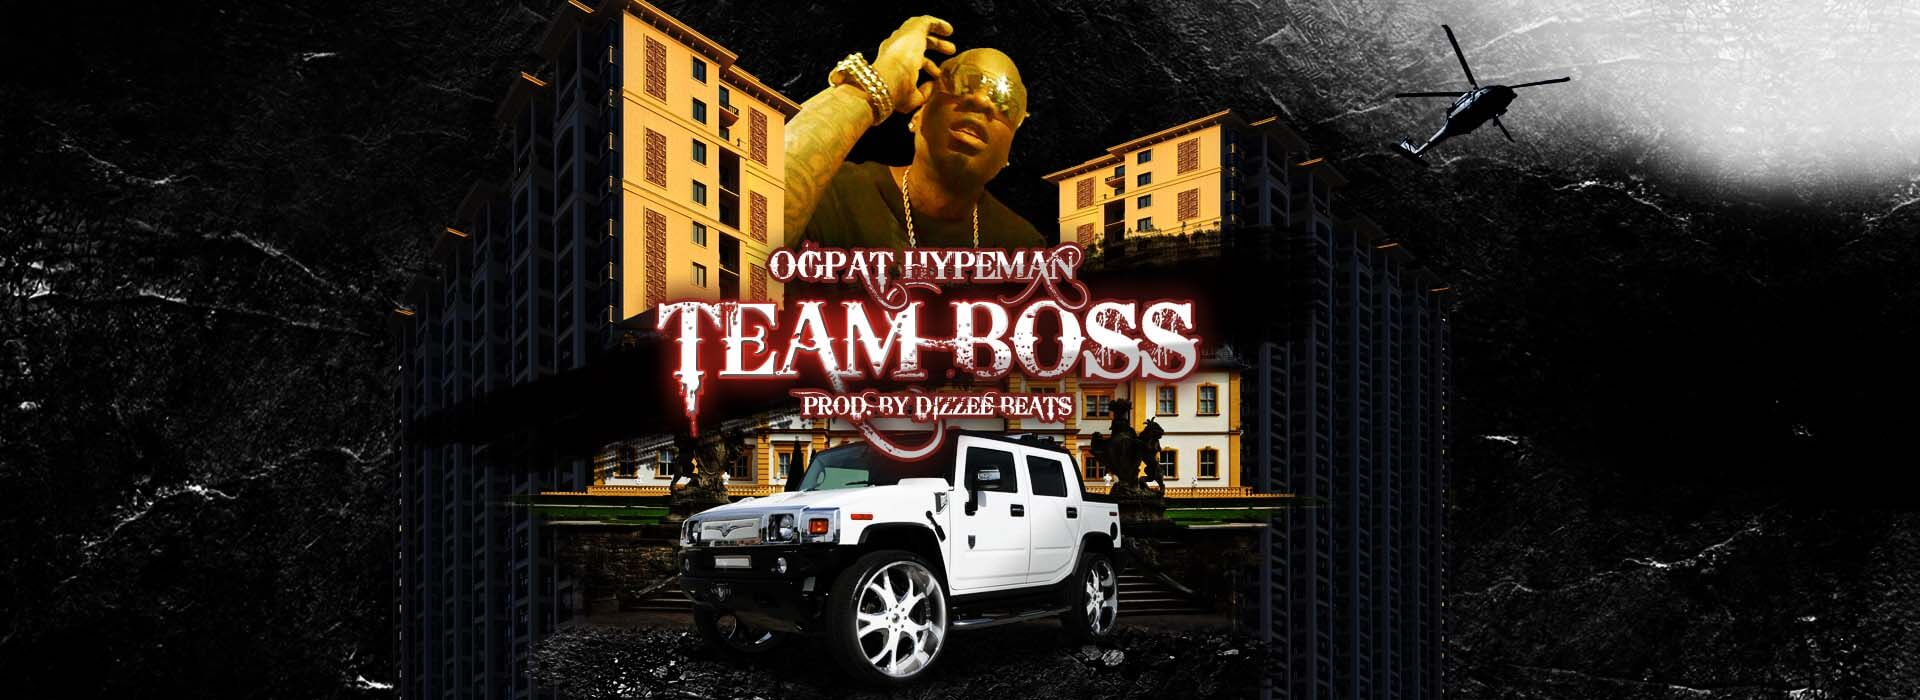 OGPat Hypeman Team Boss graphic design